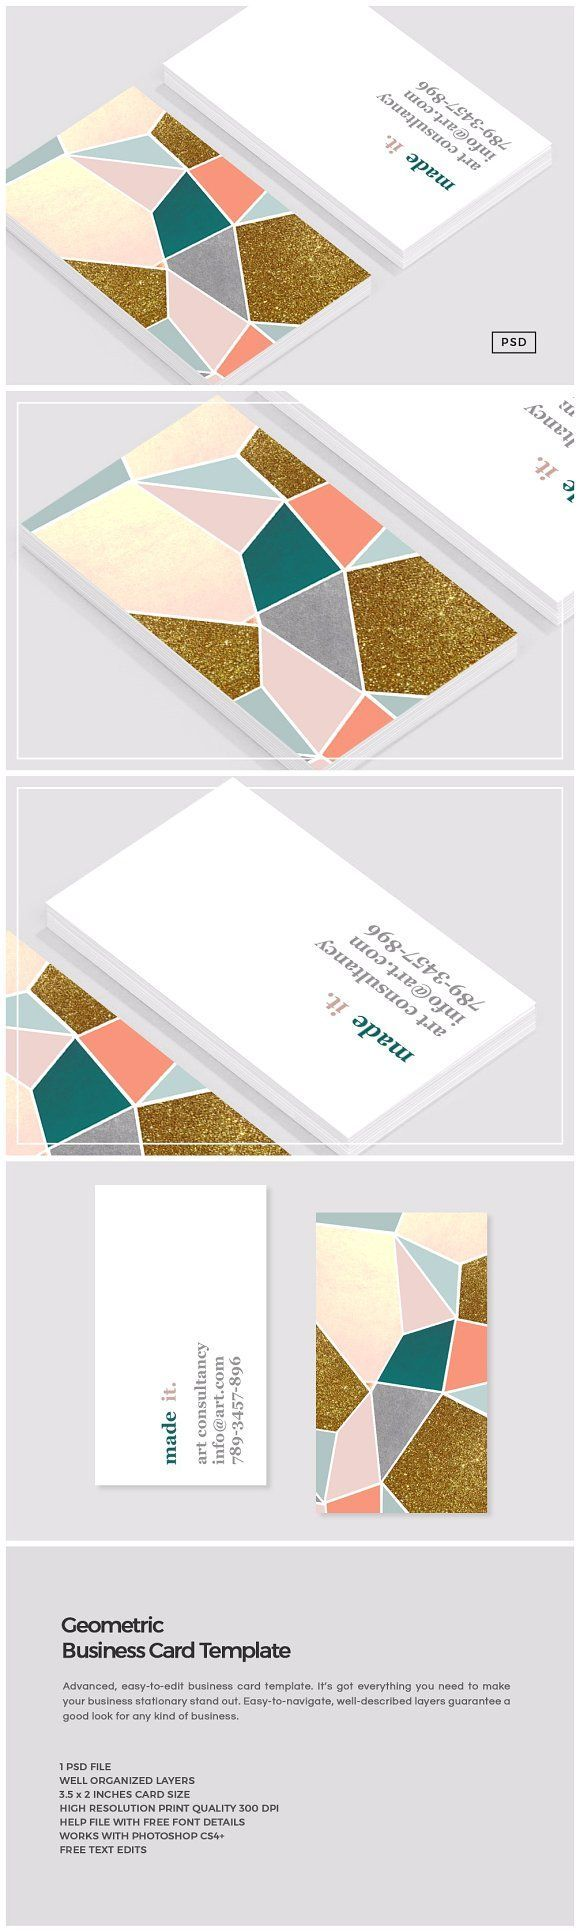 9311 best unique business card design images on pinterest business geometric business card template by the design label on creativemarket reheart Choice Image